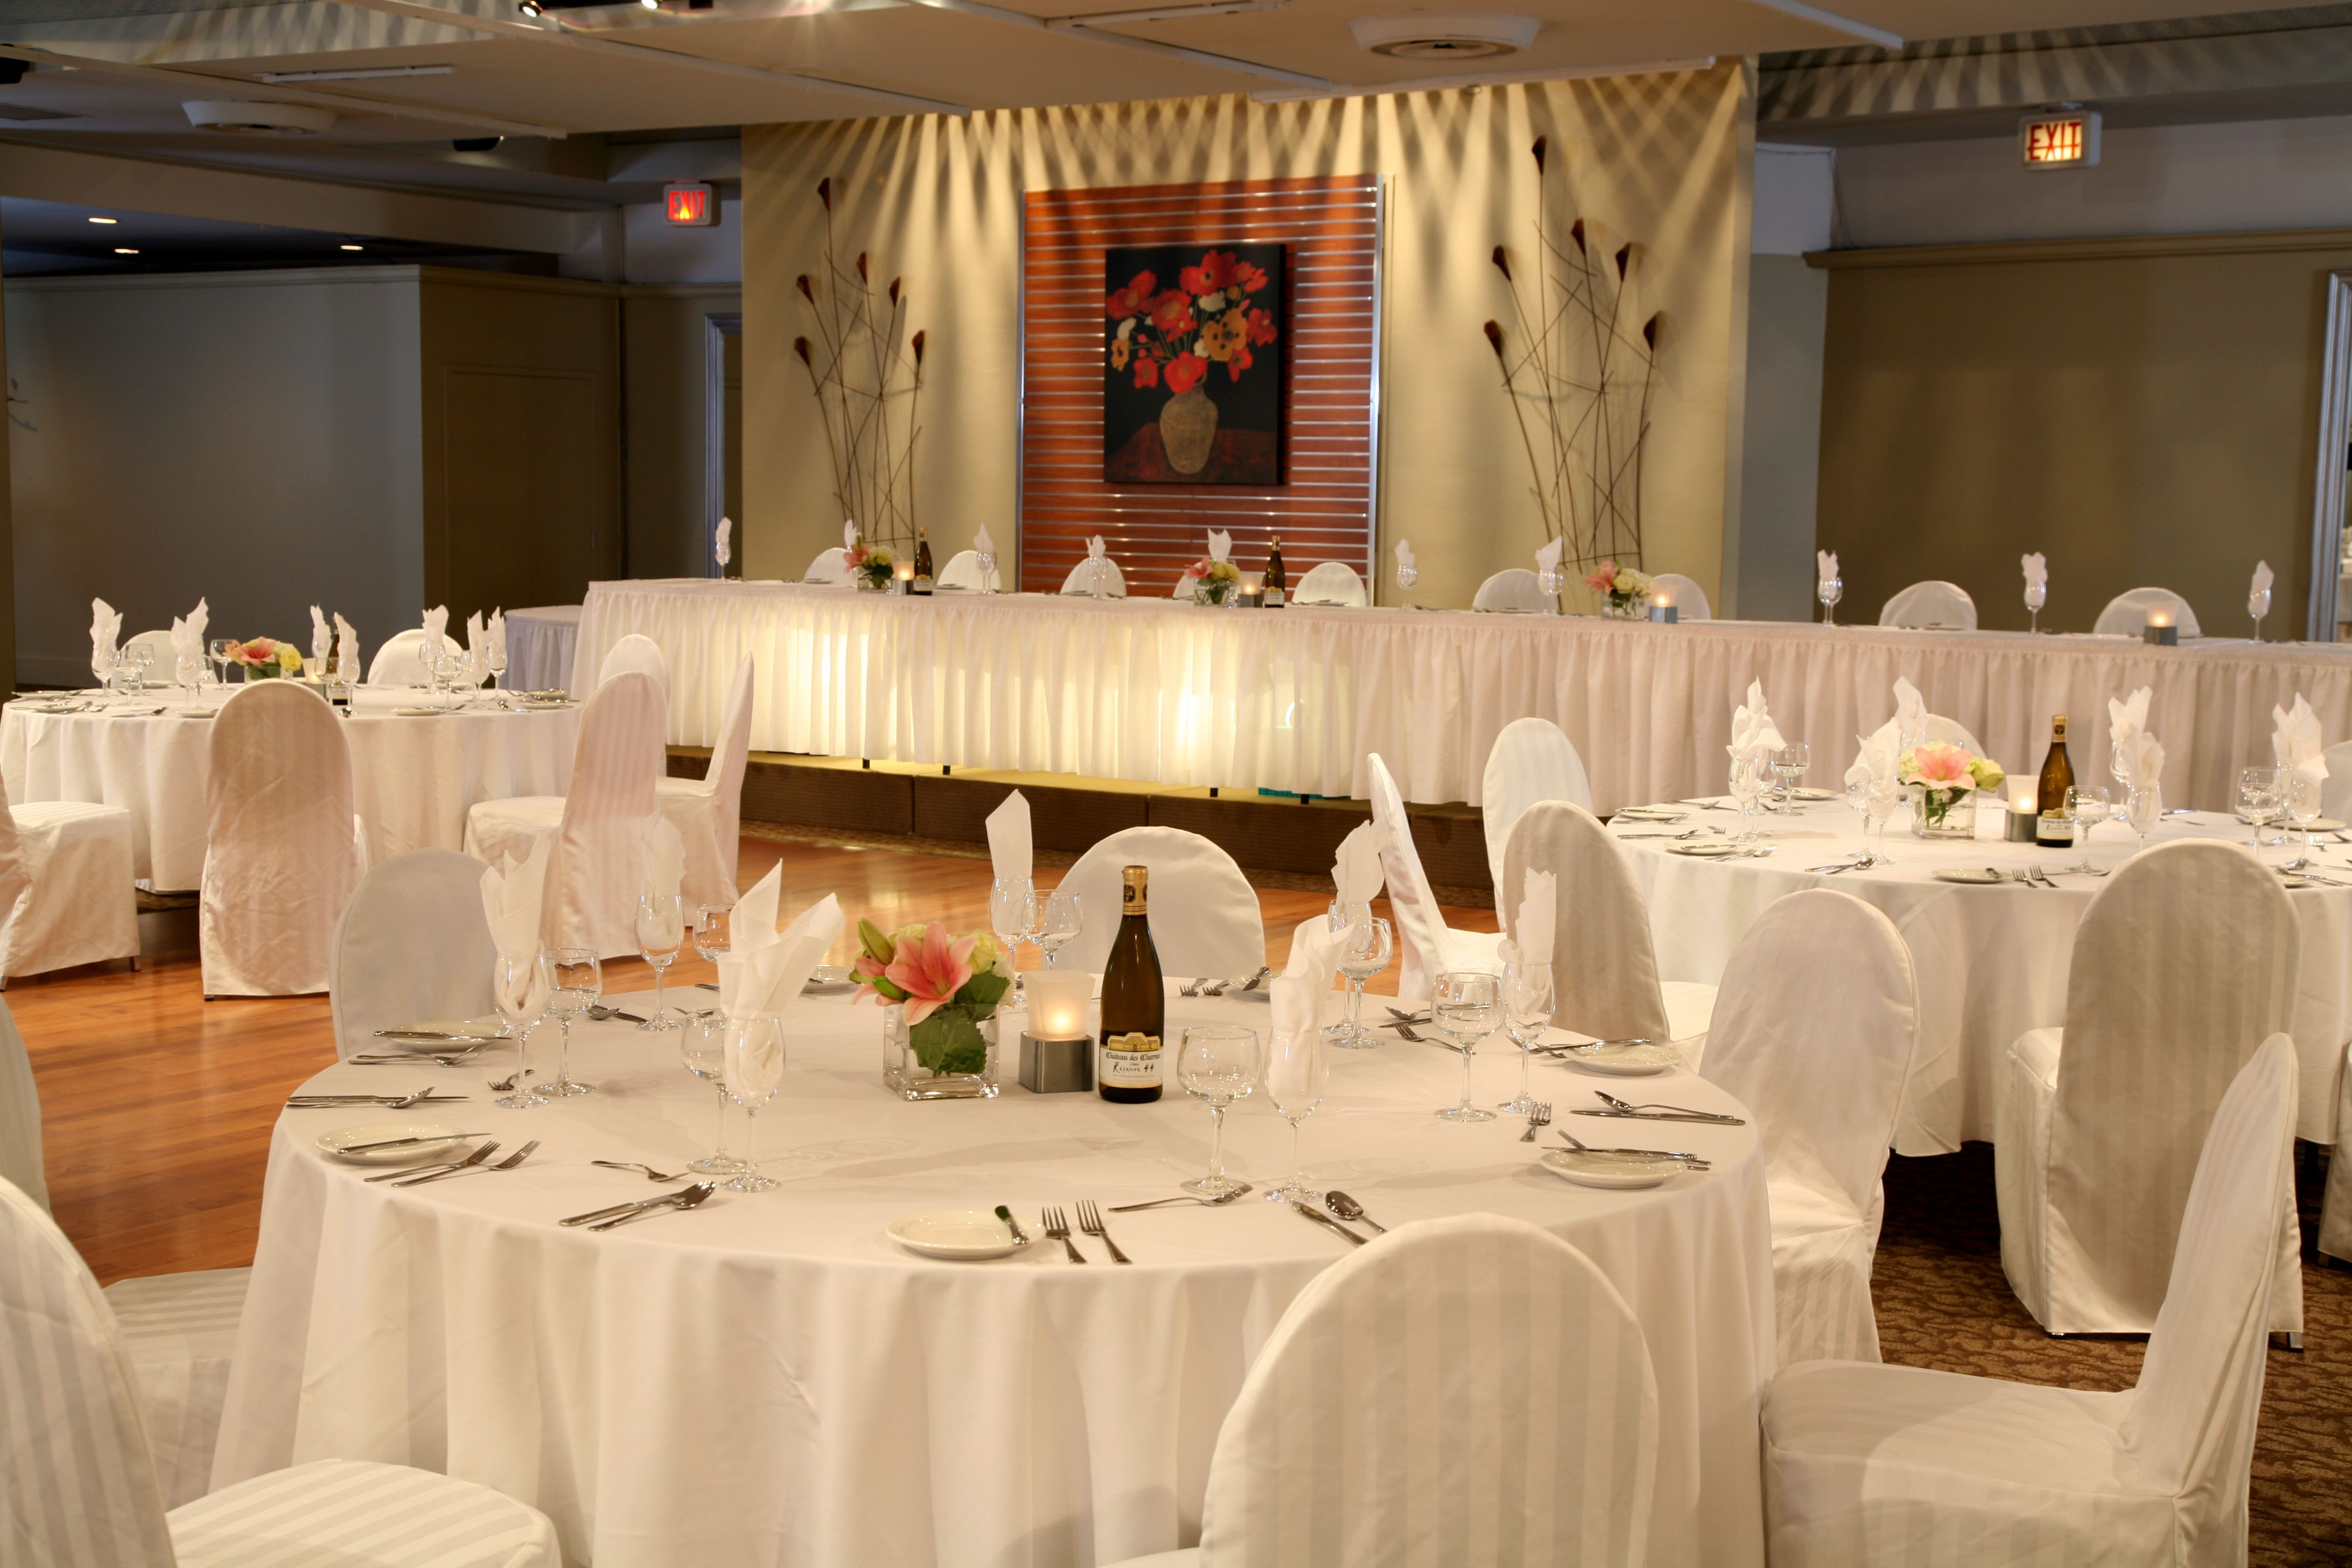 wedding reception venues cost%0A     best Kingston Wedding images on Pinterest   Receptions  Bachelorette  party favors and Pole moves